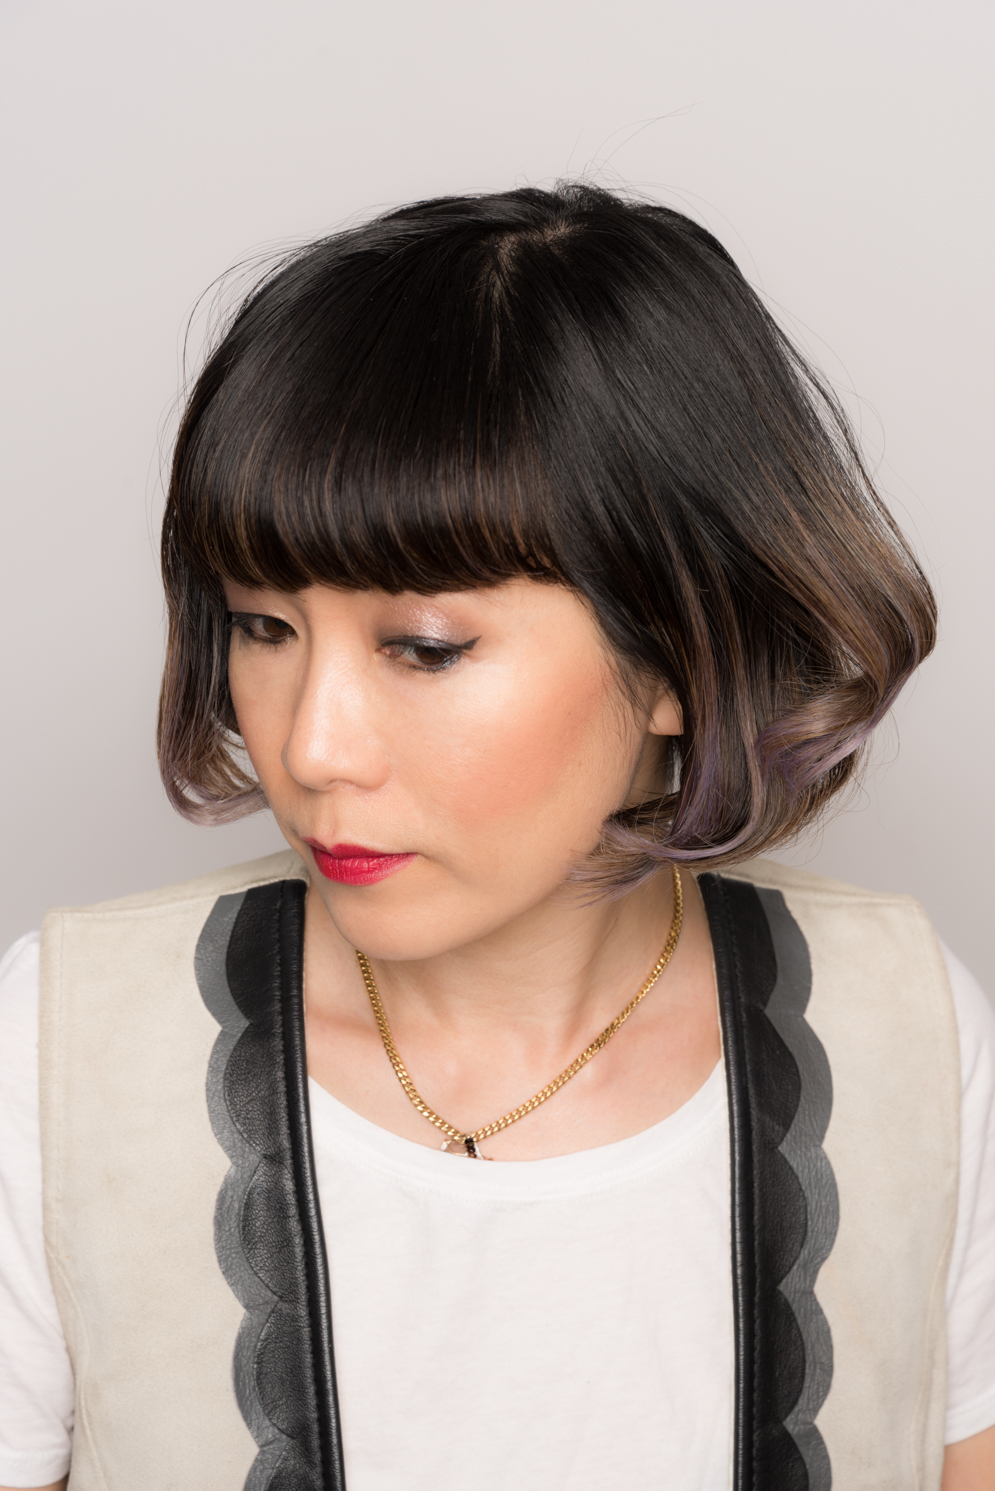 ROCK MAMA NYC LIFESTYLE BLOG -  HOW TO EASILY STYLE A SHORT BOB